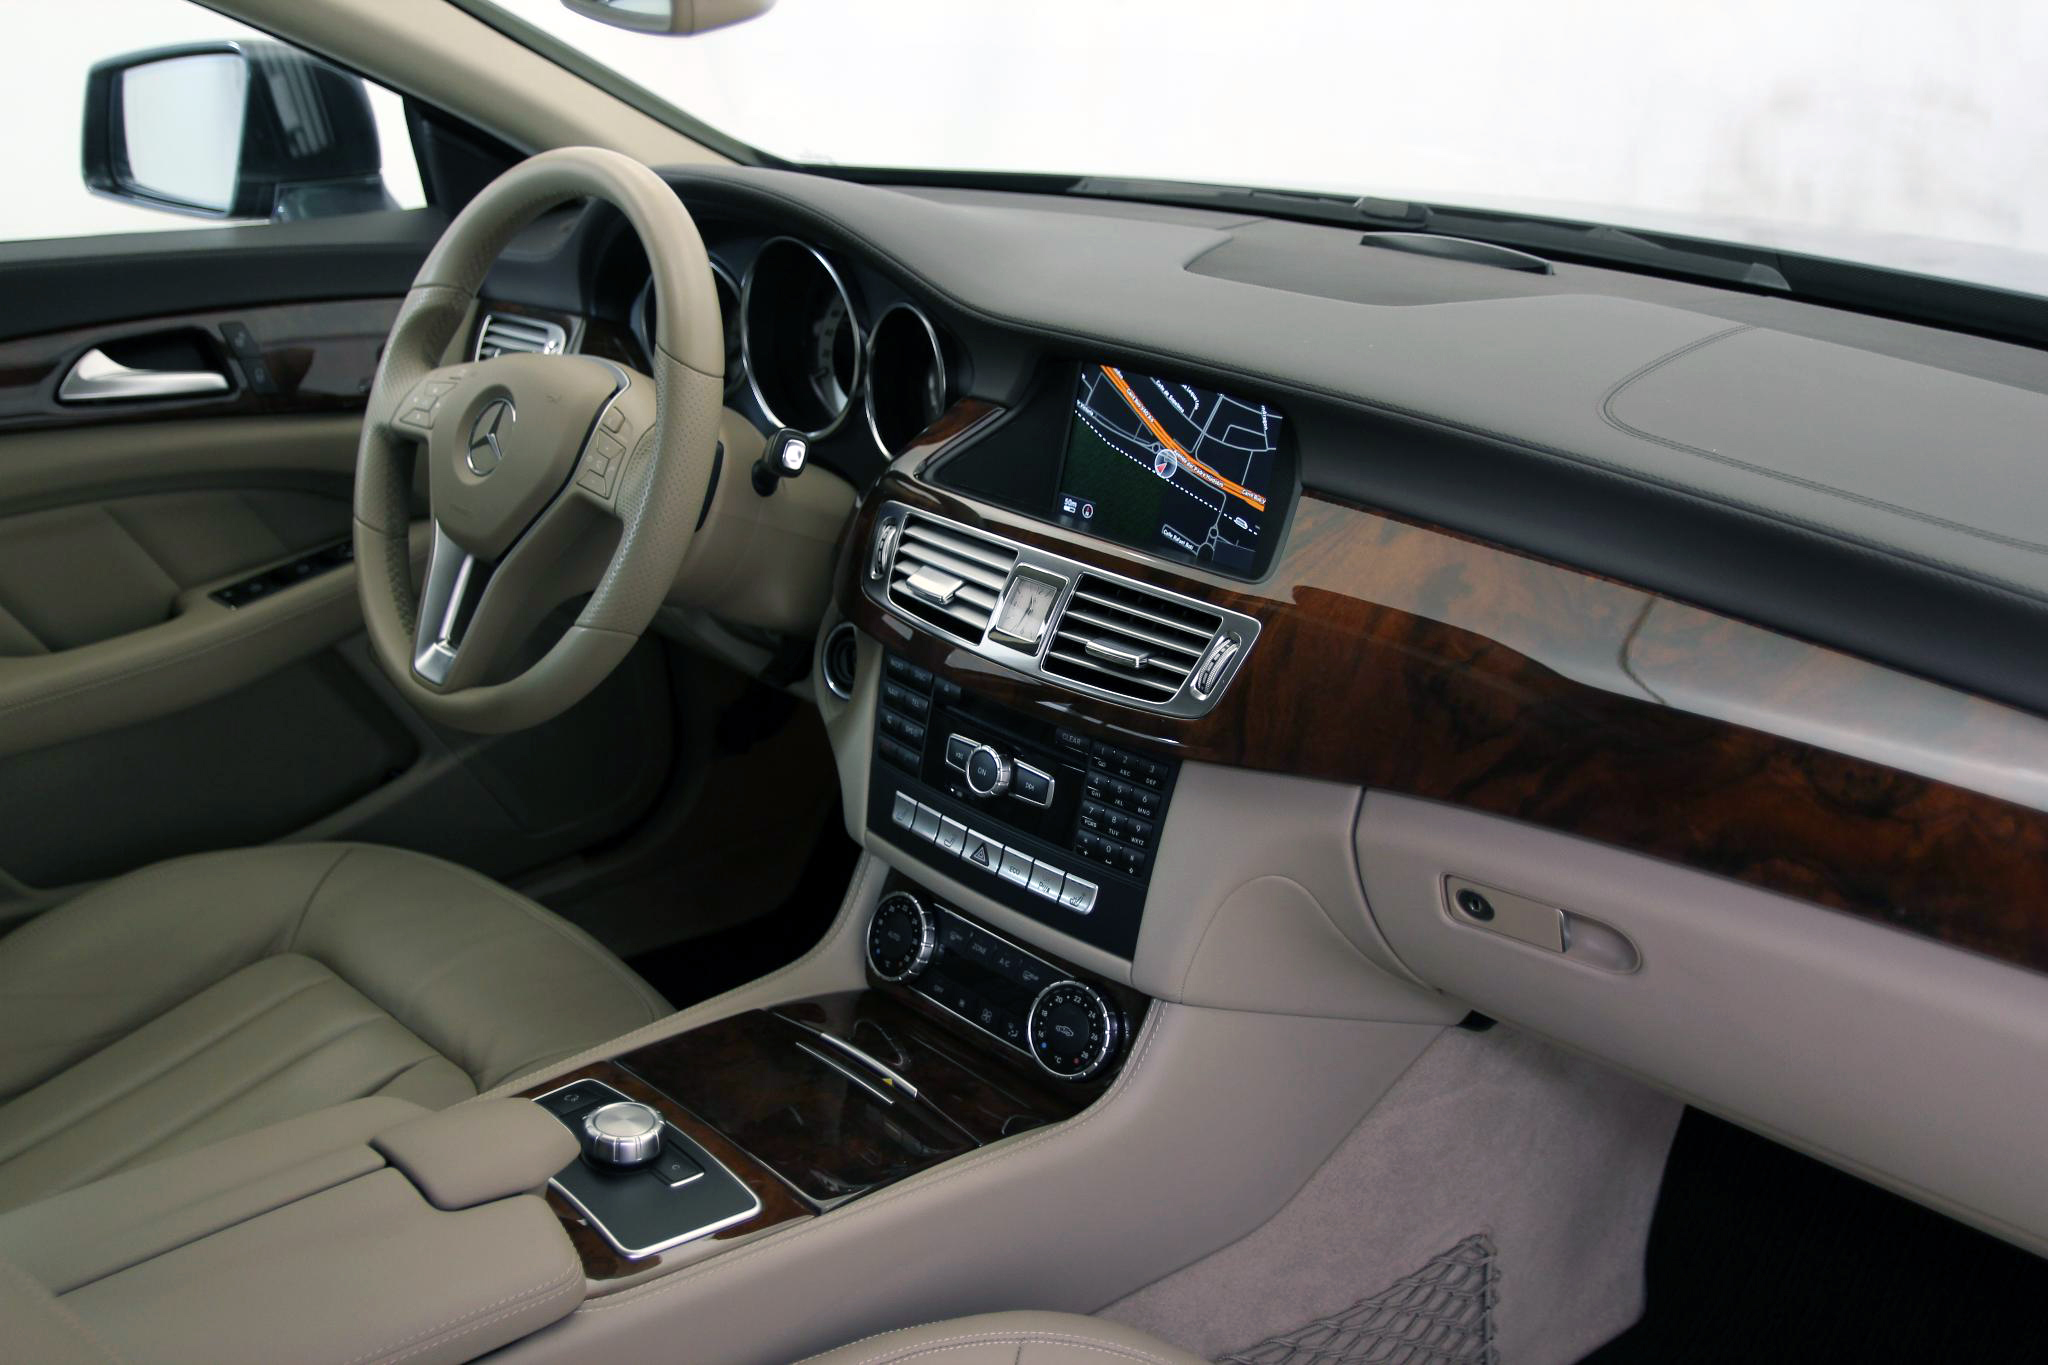 Mercedes-Benz Clase CLS CLS SHOOTING BRAKE 350 CDI AUTO imagen 20